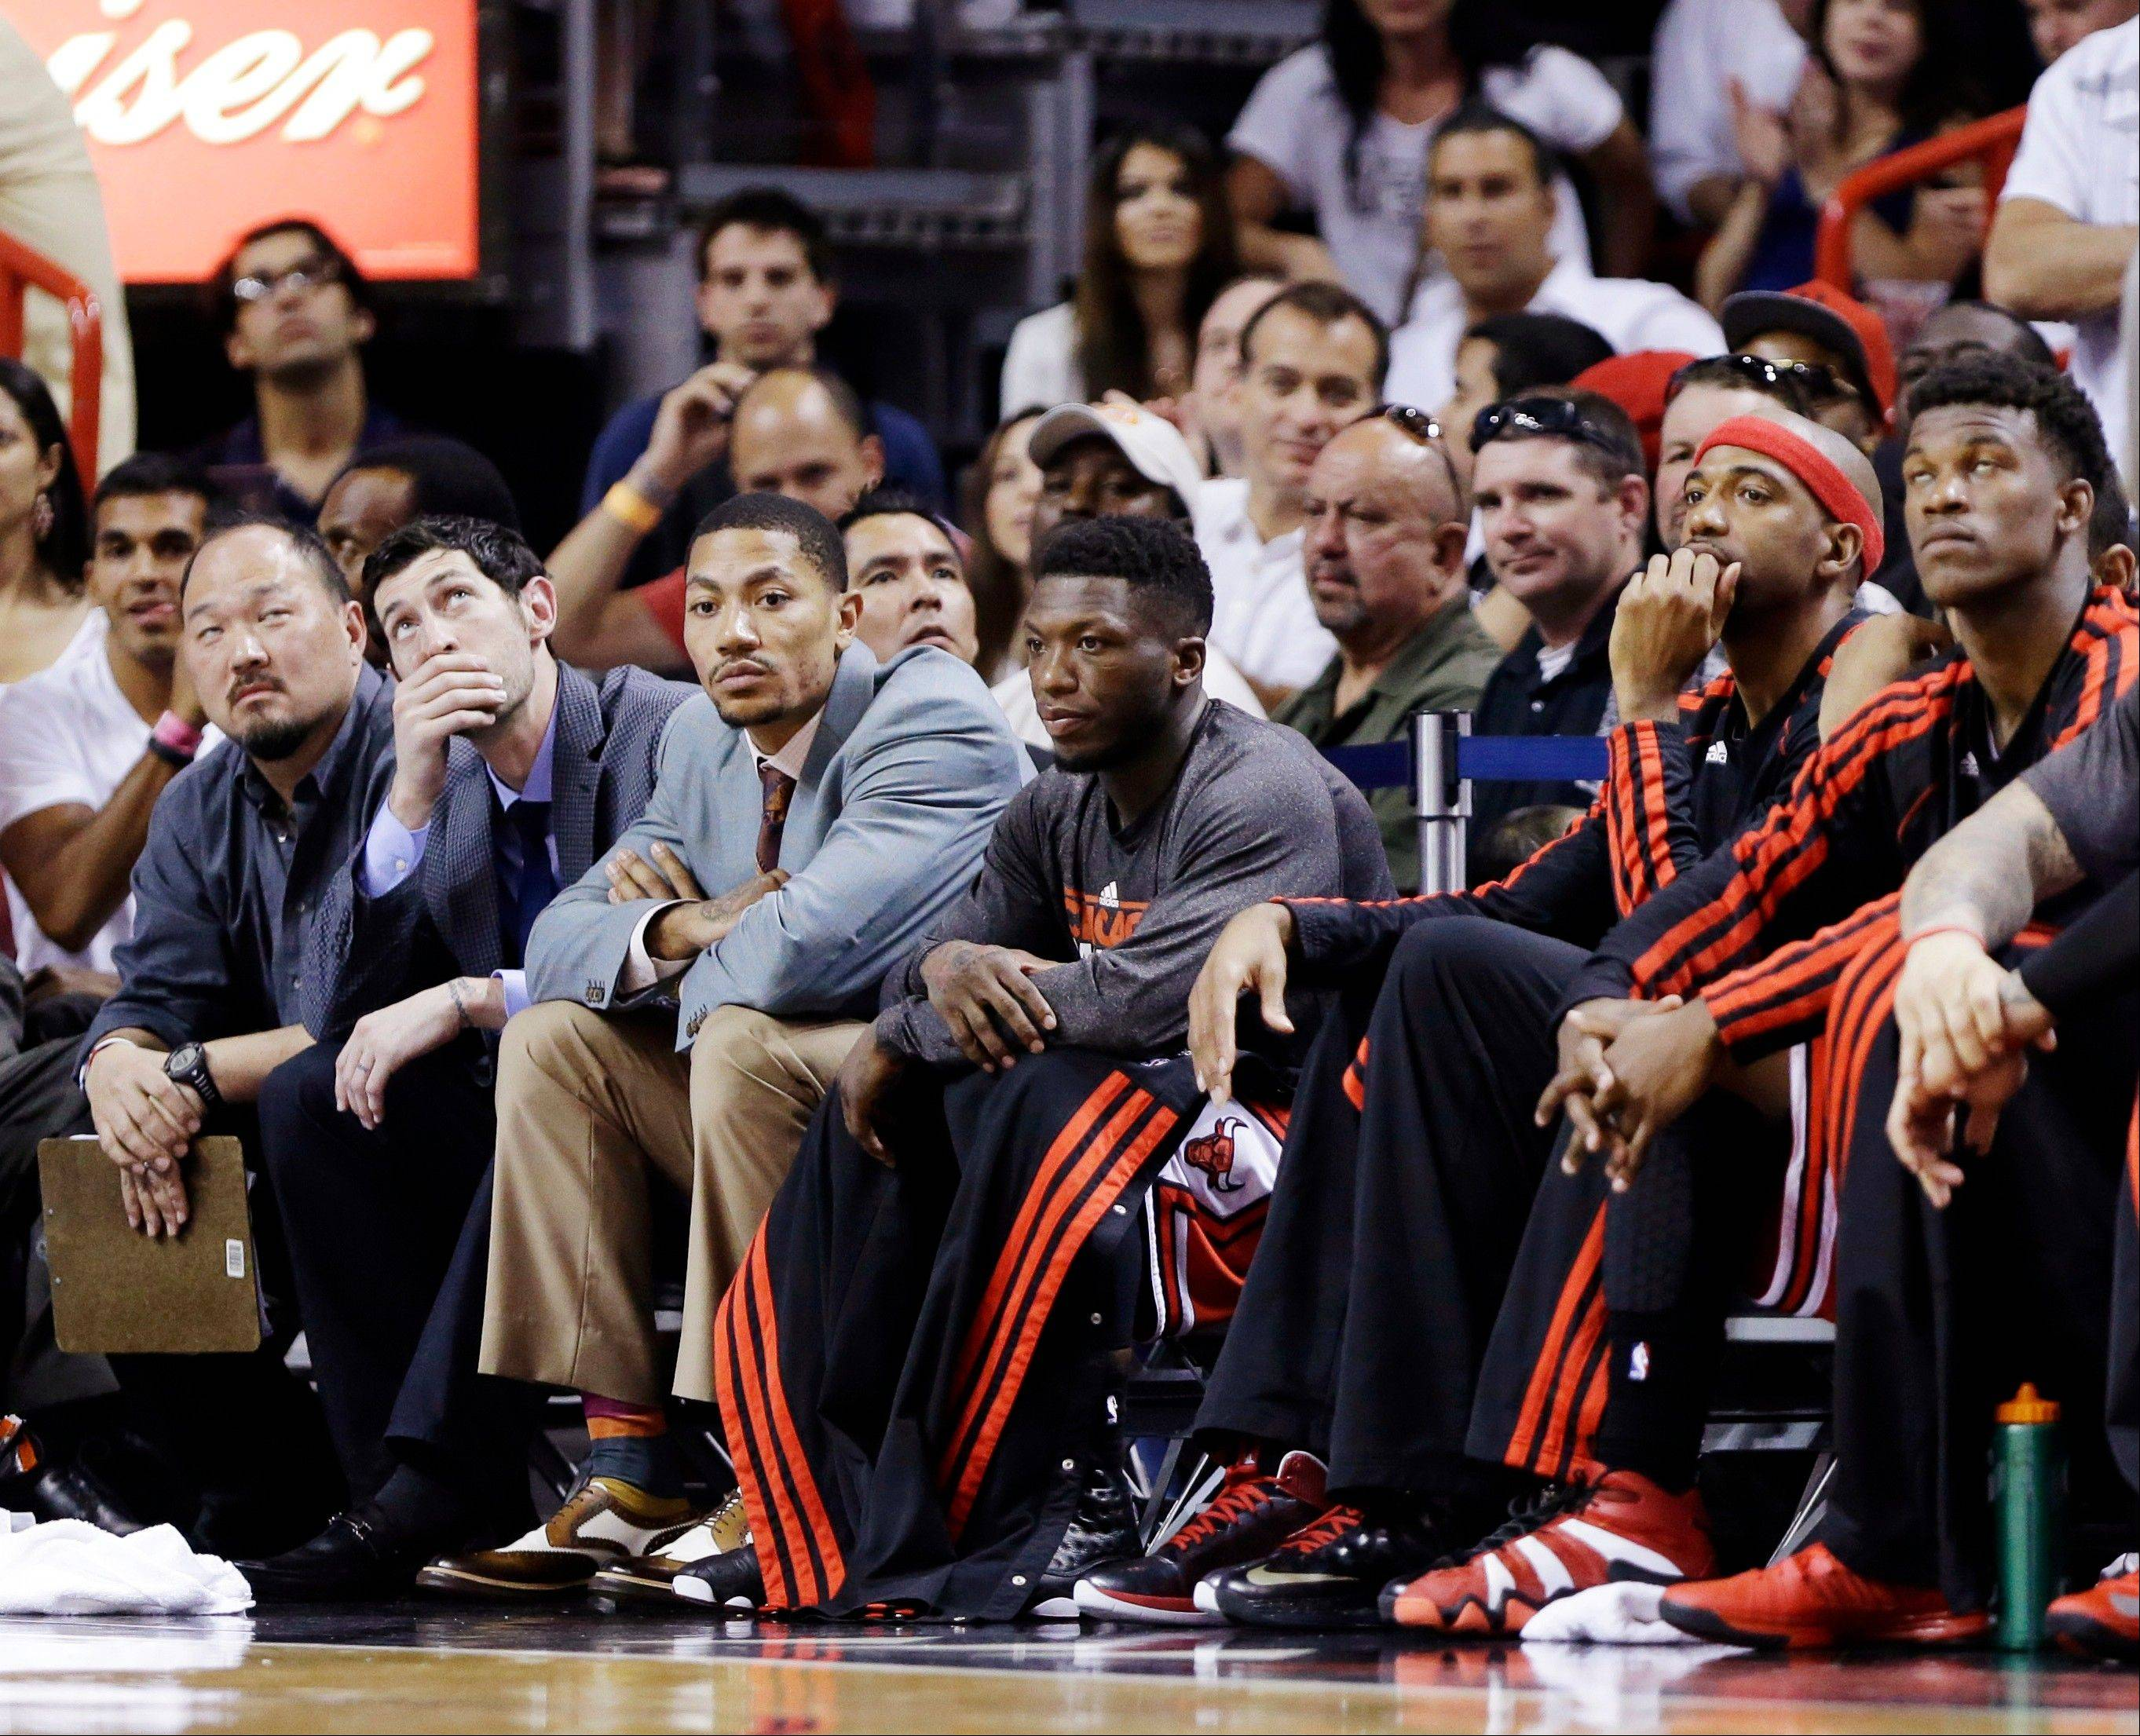 From left, Chicago Bulls' Kirk Hinrich, Derrick Rose, Nate Robinson, Richard Hamilton and Jimmy Butler watch from the bench during the final seconds of Game 2 of the NBA basketball playoff series in the Eastern Conference semifinals against the Miami Heat Wednesday night in Miami. The Heat won 115-78.